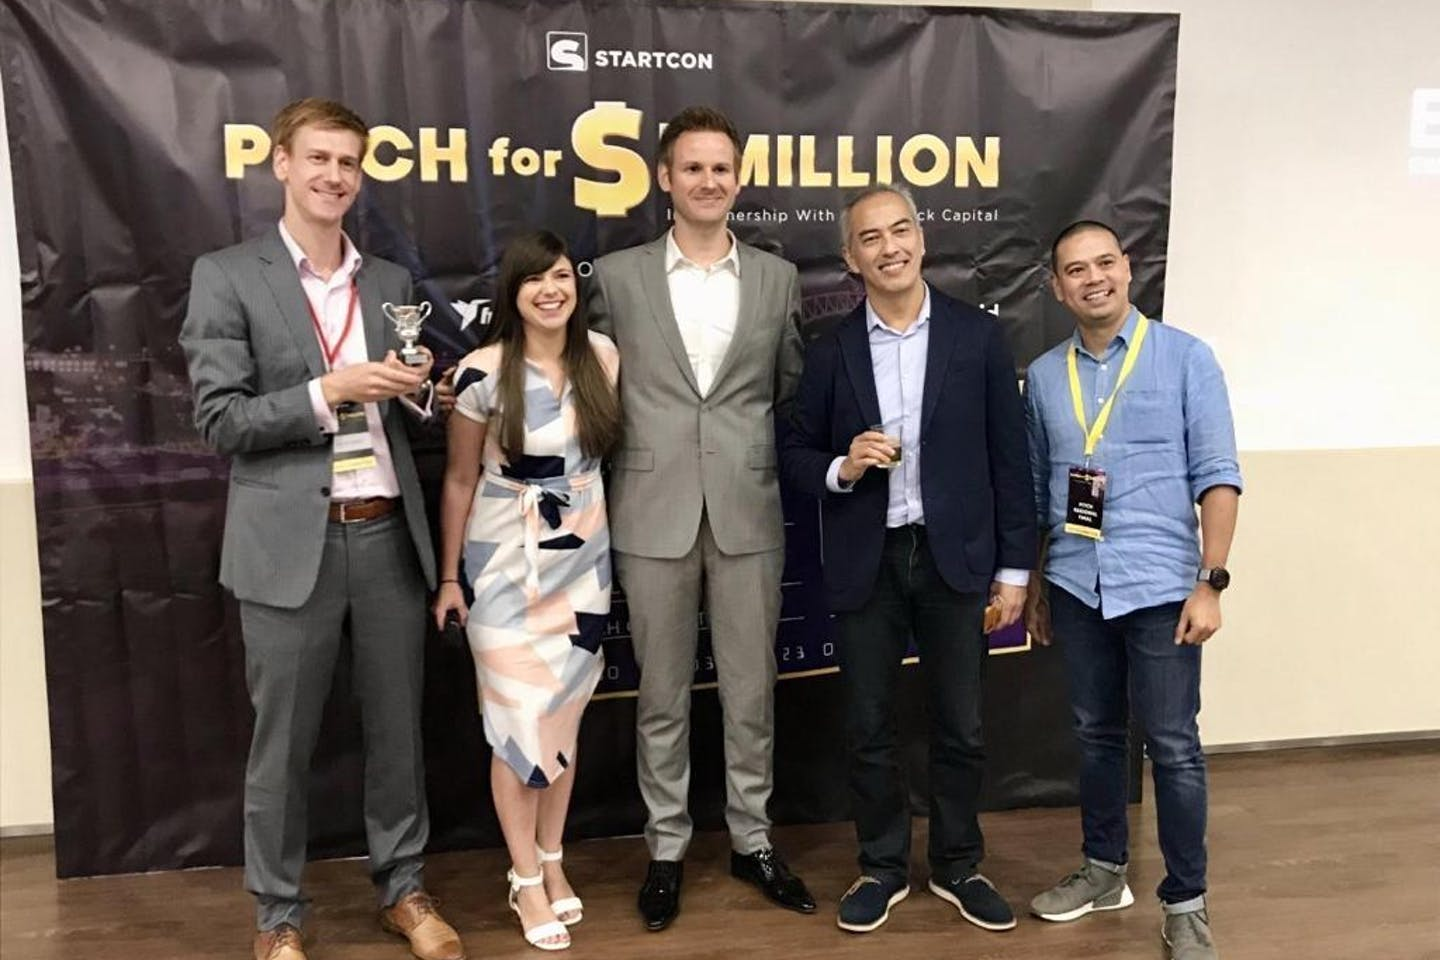 Positive Energy Ltd. wins the StartCon 'Pitch for $1 Million' regional final  in Singapore for its breakthrough technology in renewable energy finance